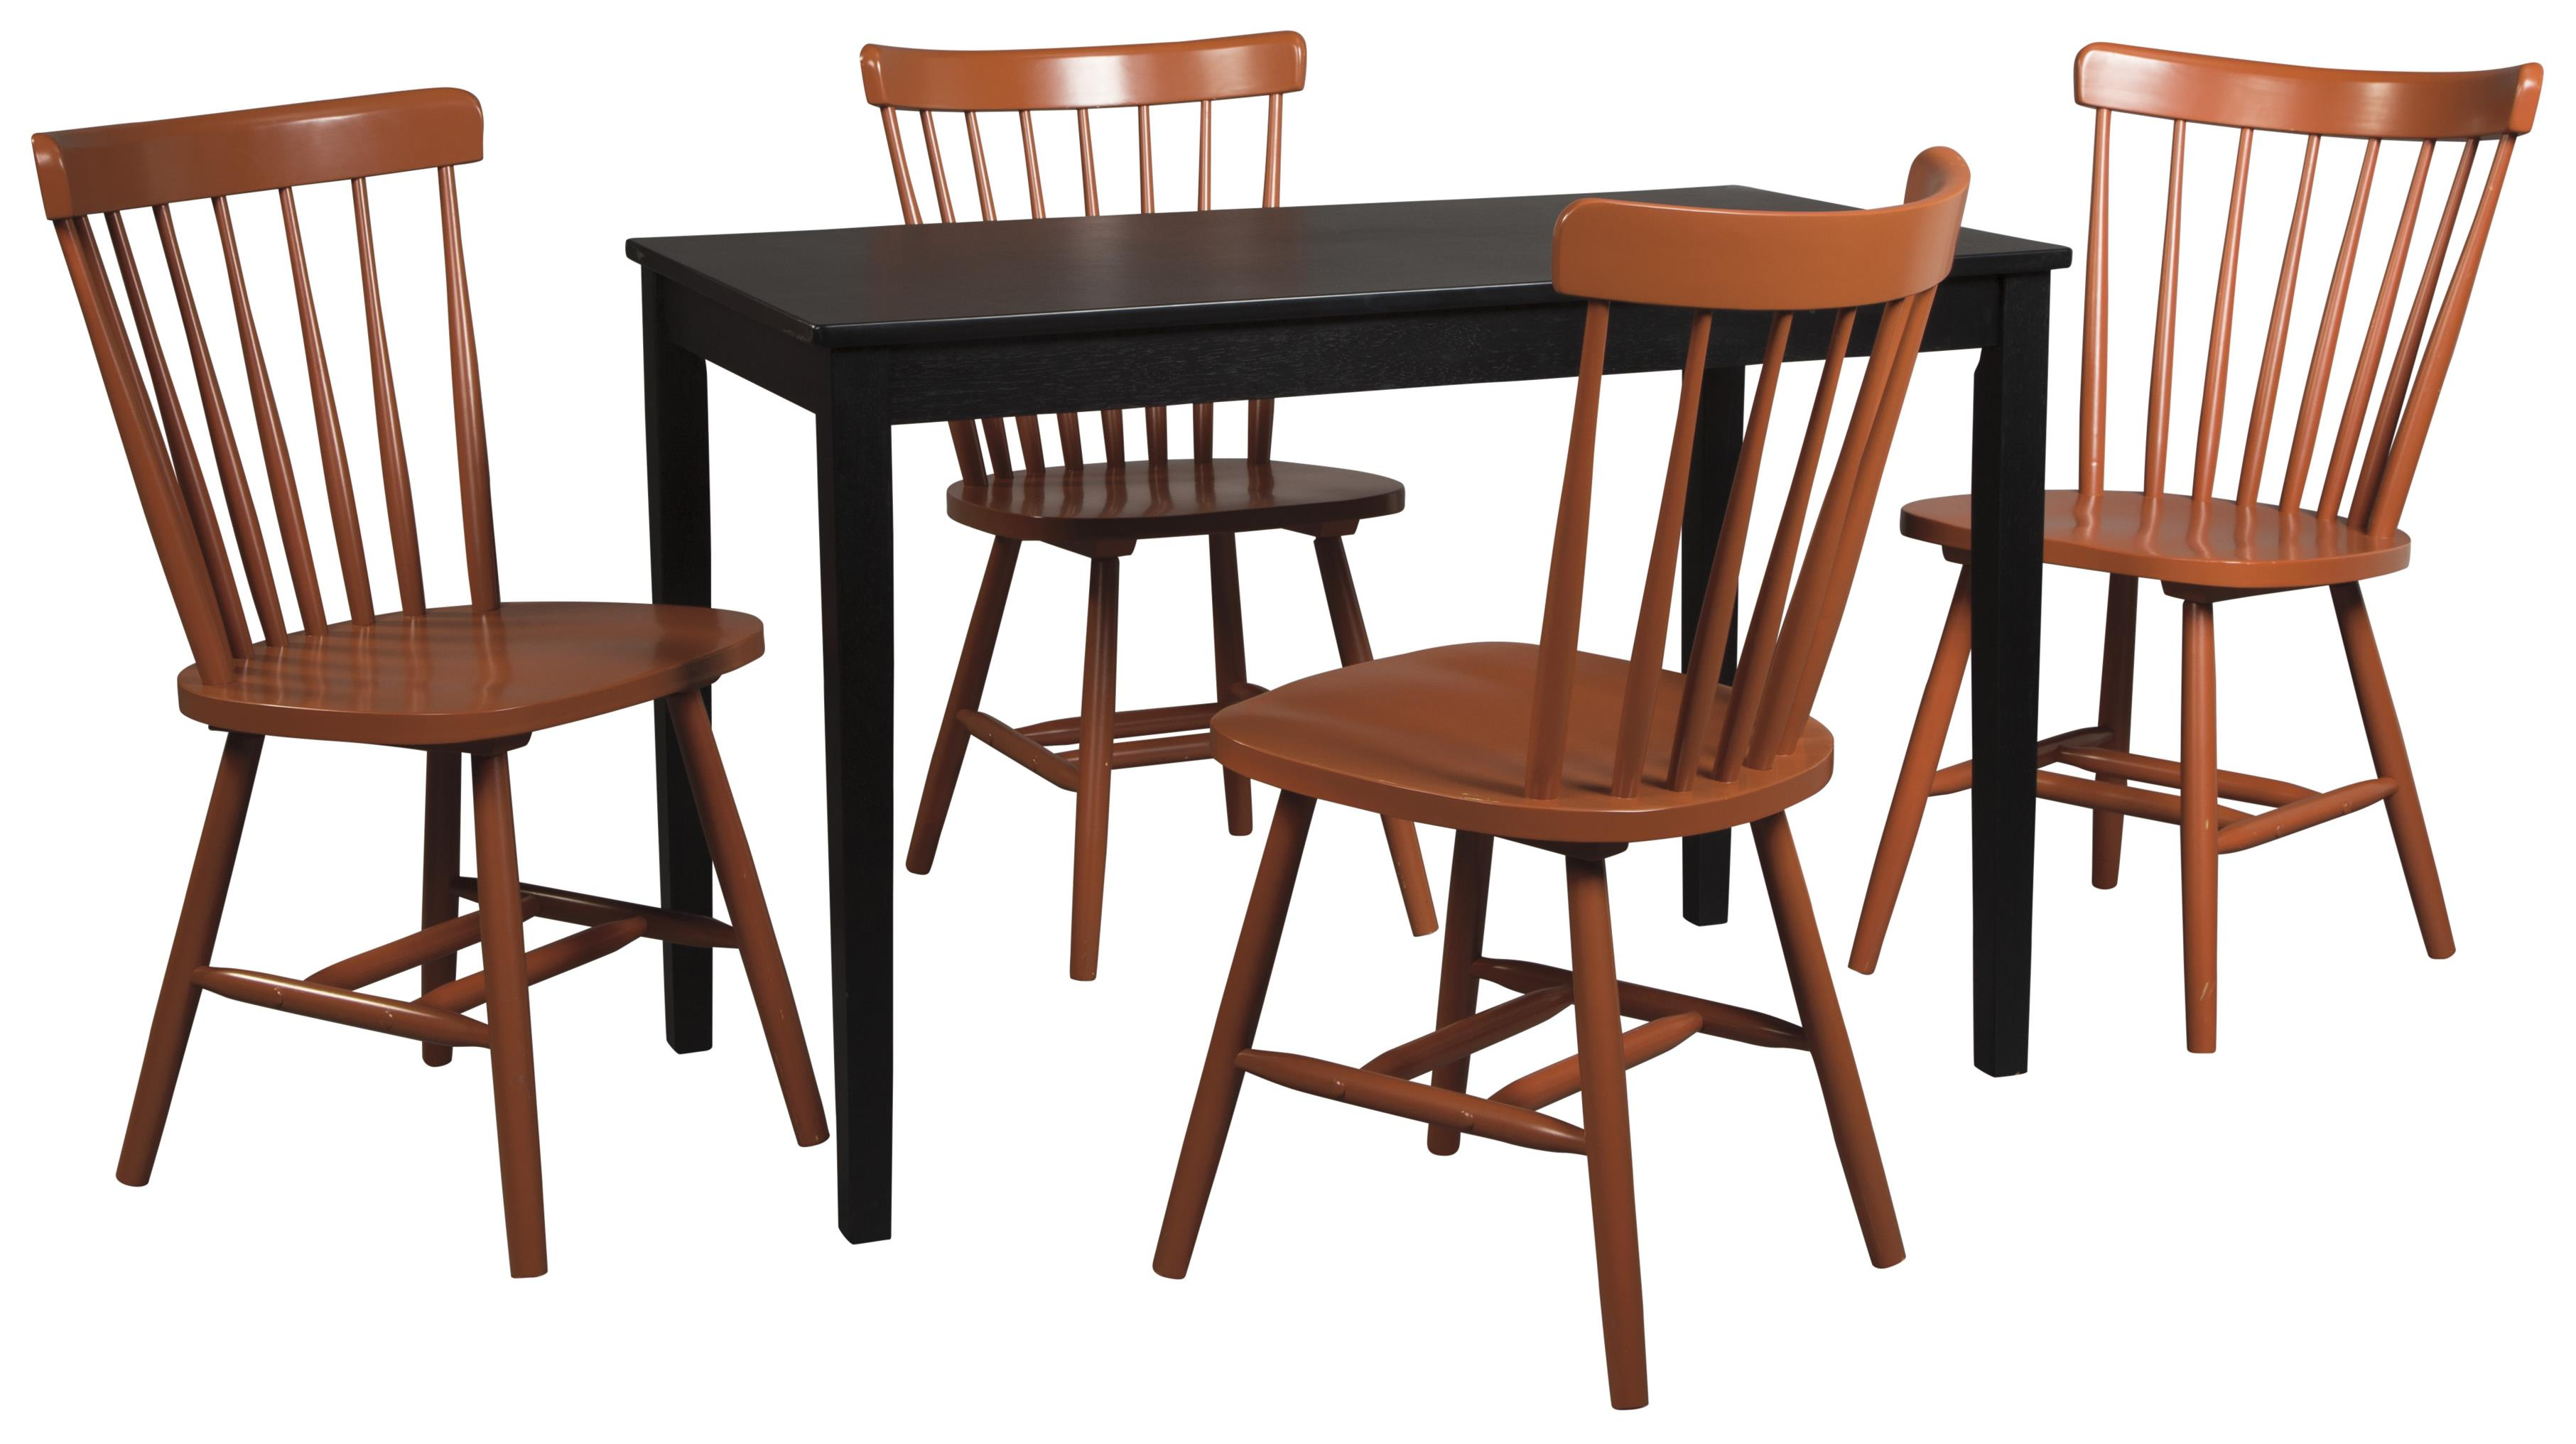 Signature Design by Ashley Kimonte 5-Piece Rectangular Table Set - Item Number: D250-25+4xD389-03